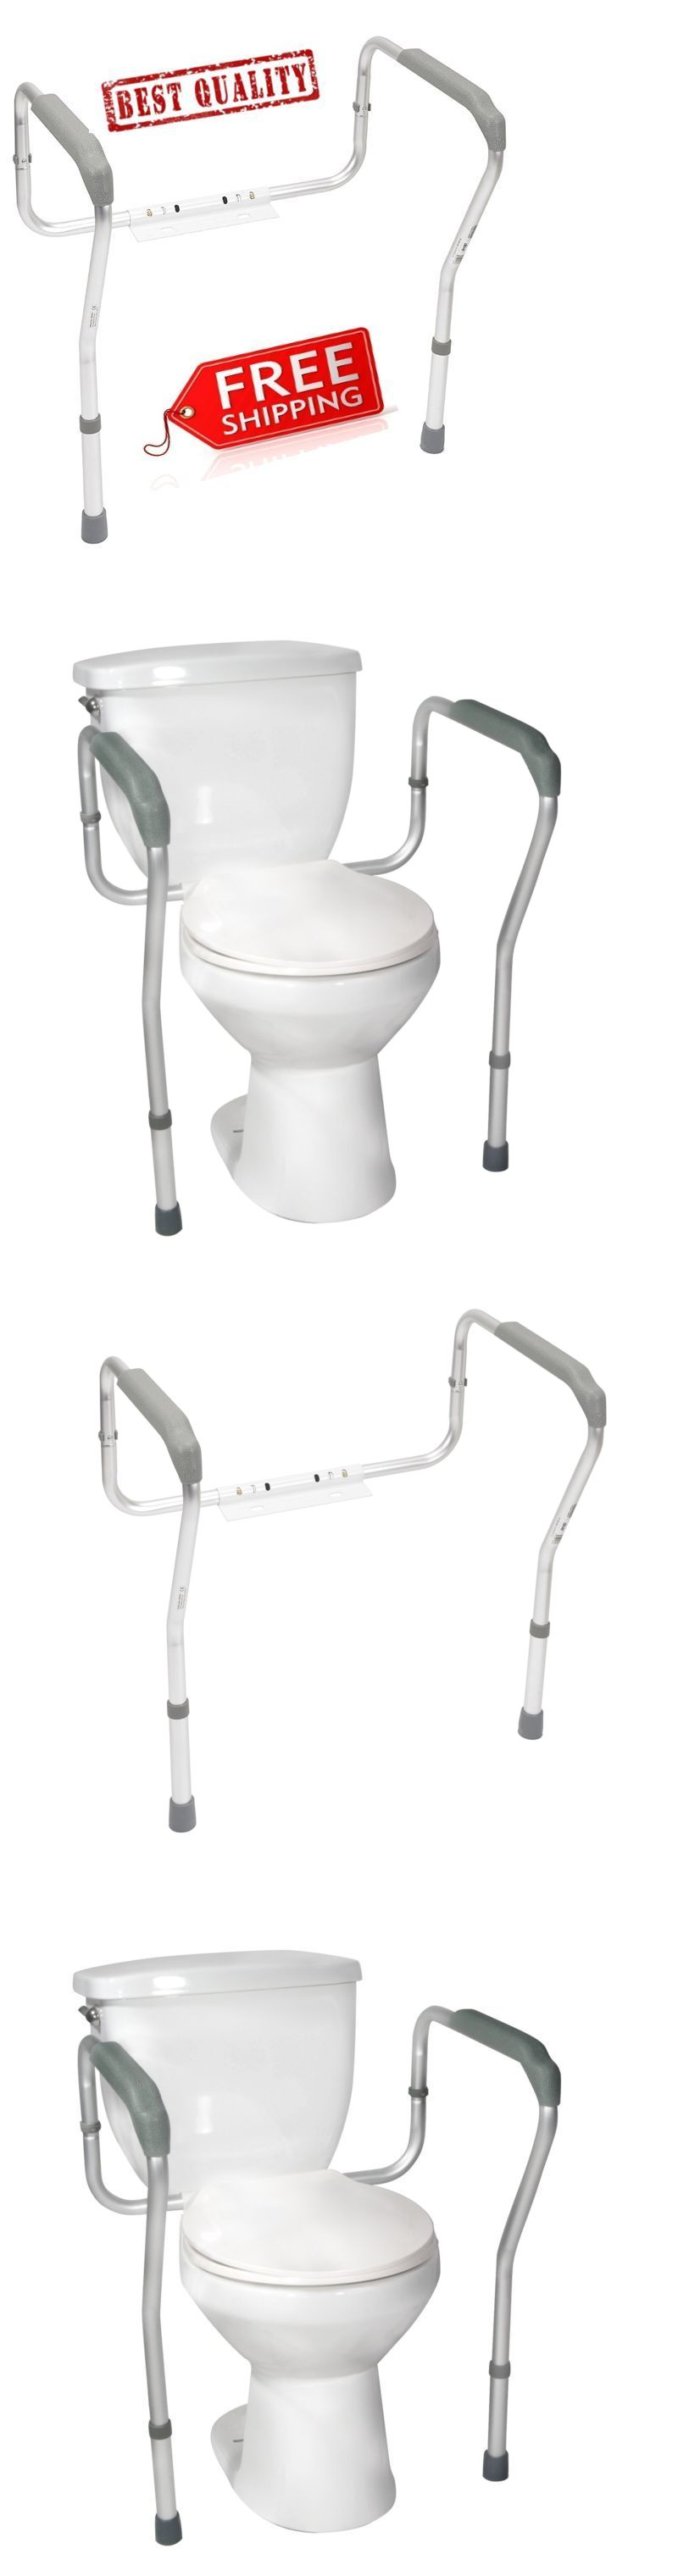 Handles and Rails: Toilet Support Rail Grab Bars Adjustable Safety ...